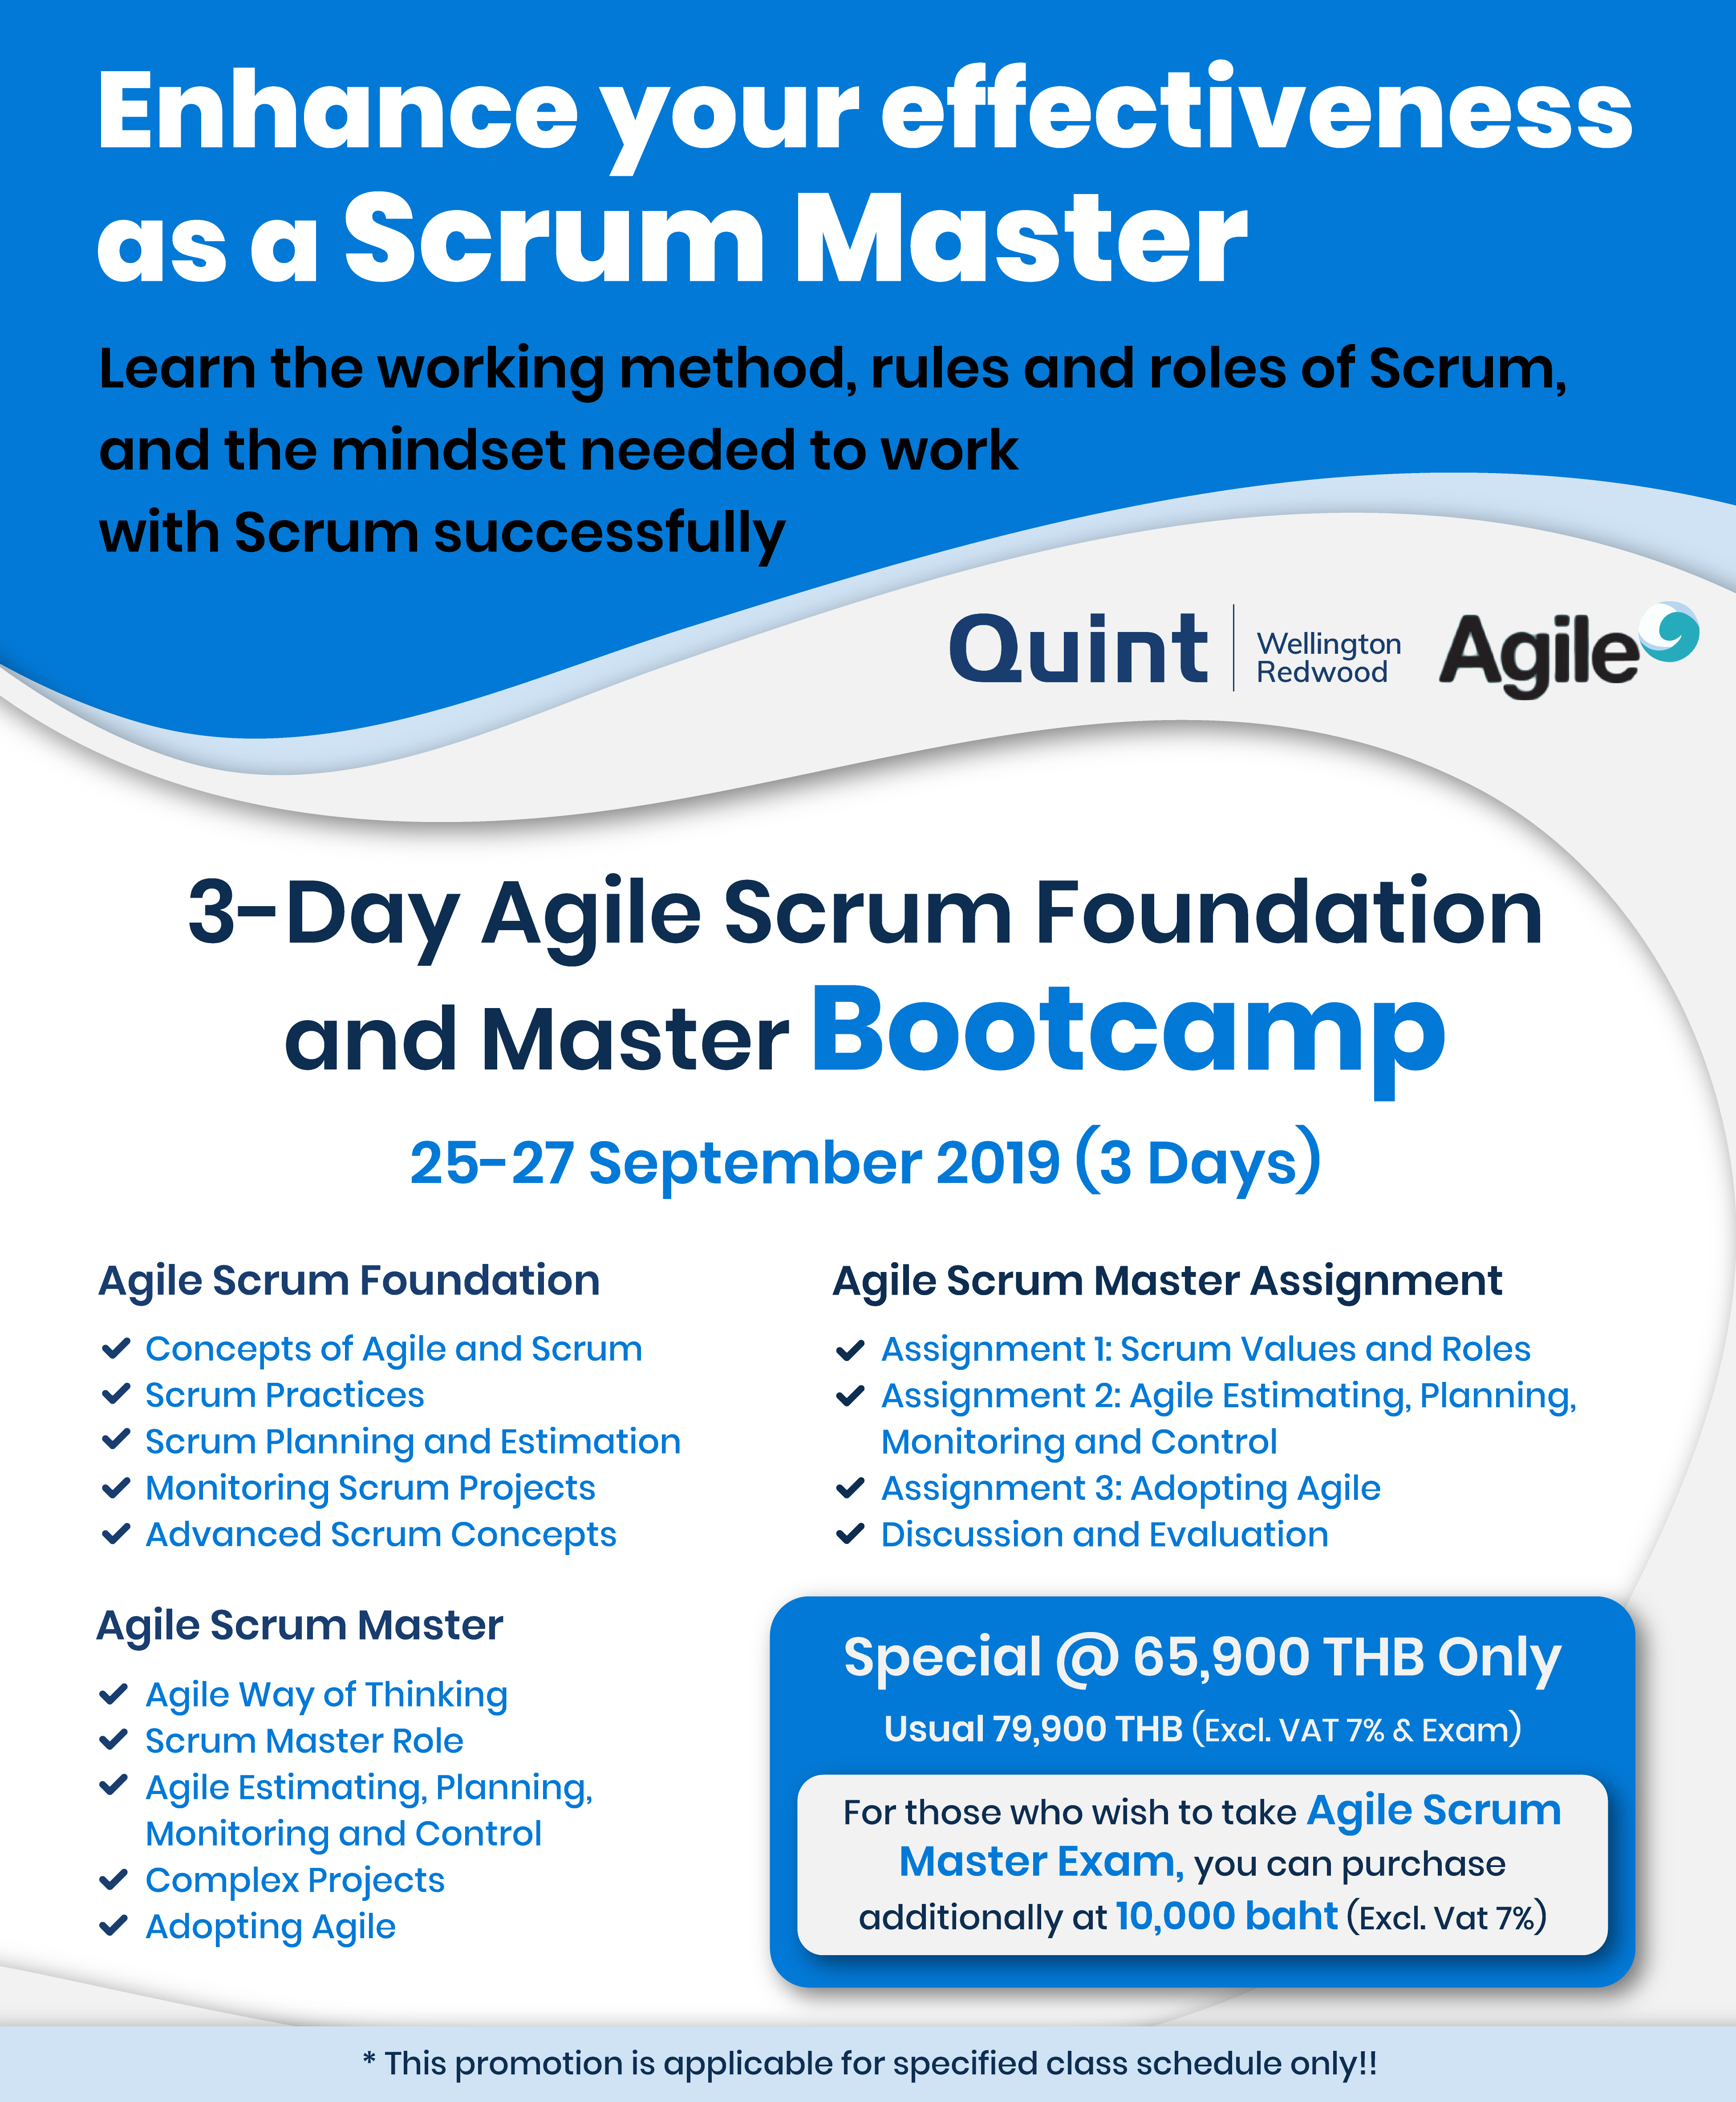 Enhance your effectiveness as a Scrum Master, don't miss